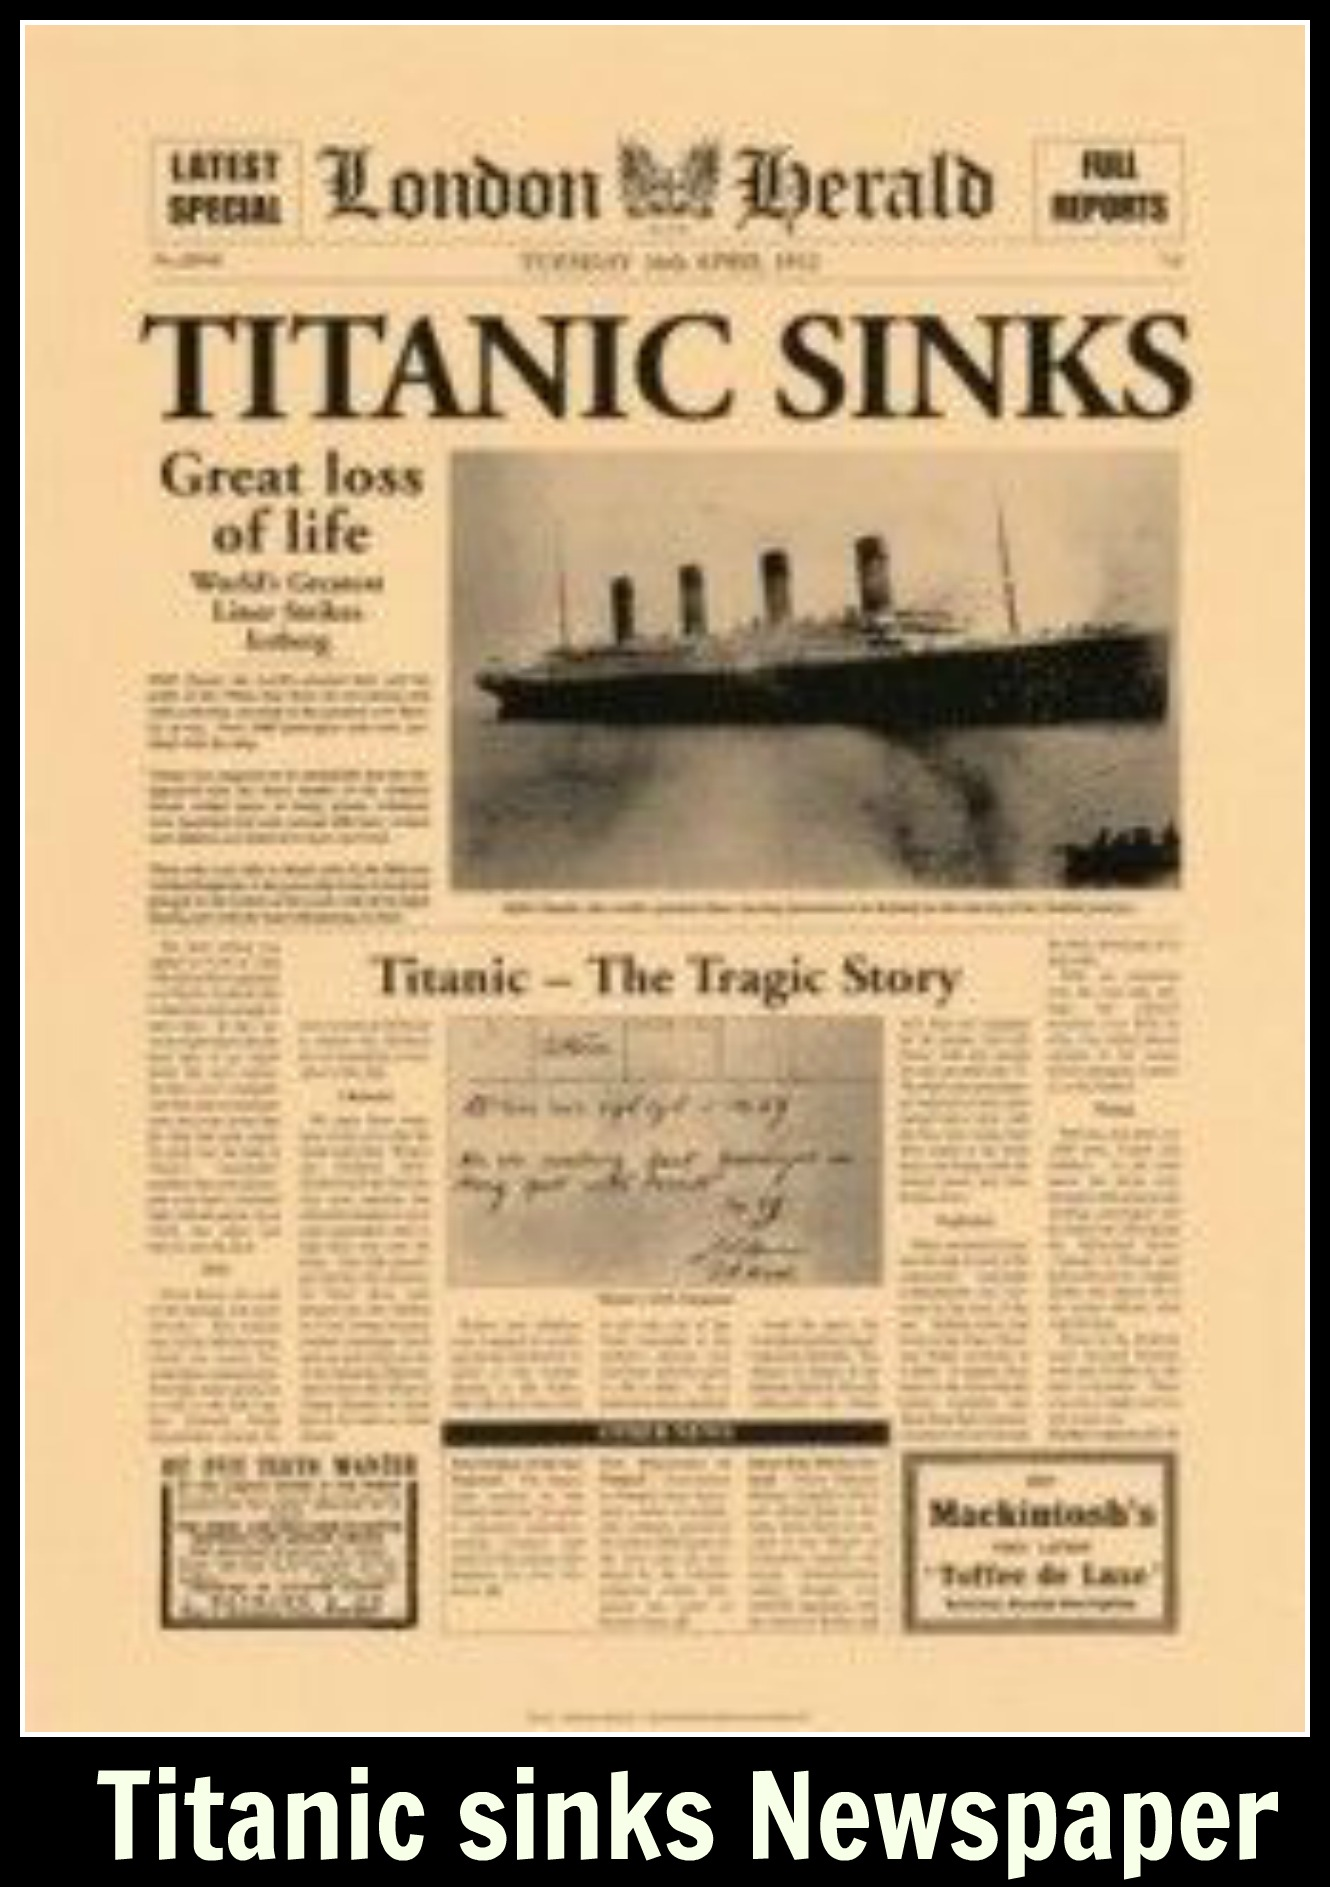 titanic sinks newspaper text.jpg